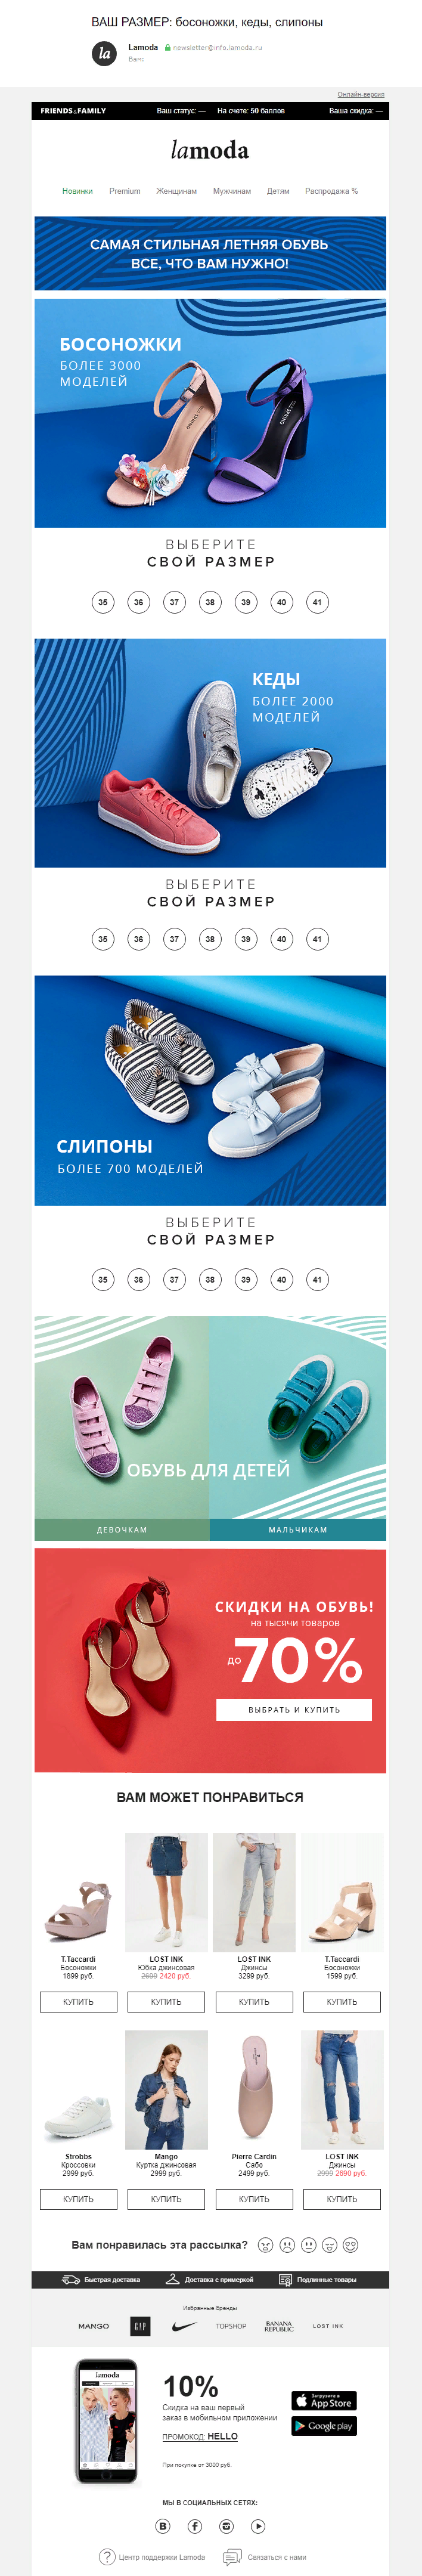 Lamoda (16.05.2018) You can group your products according